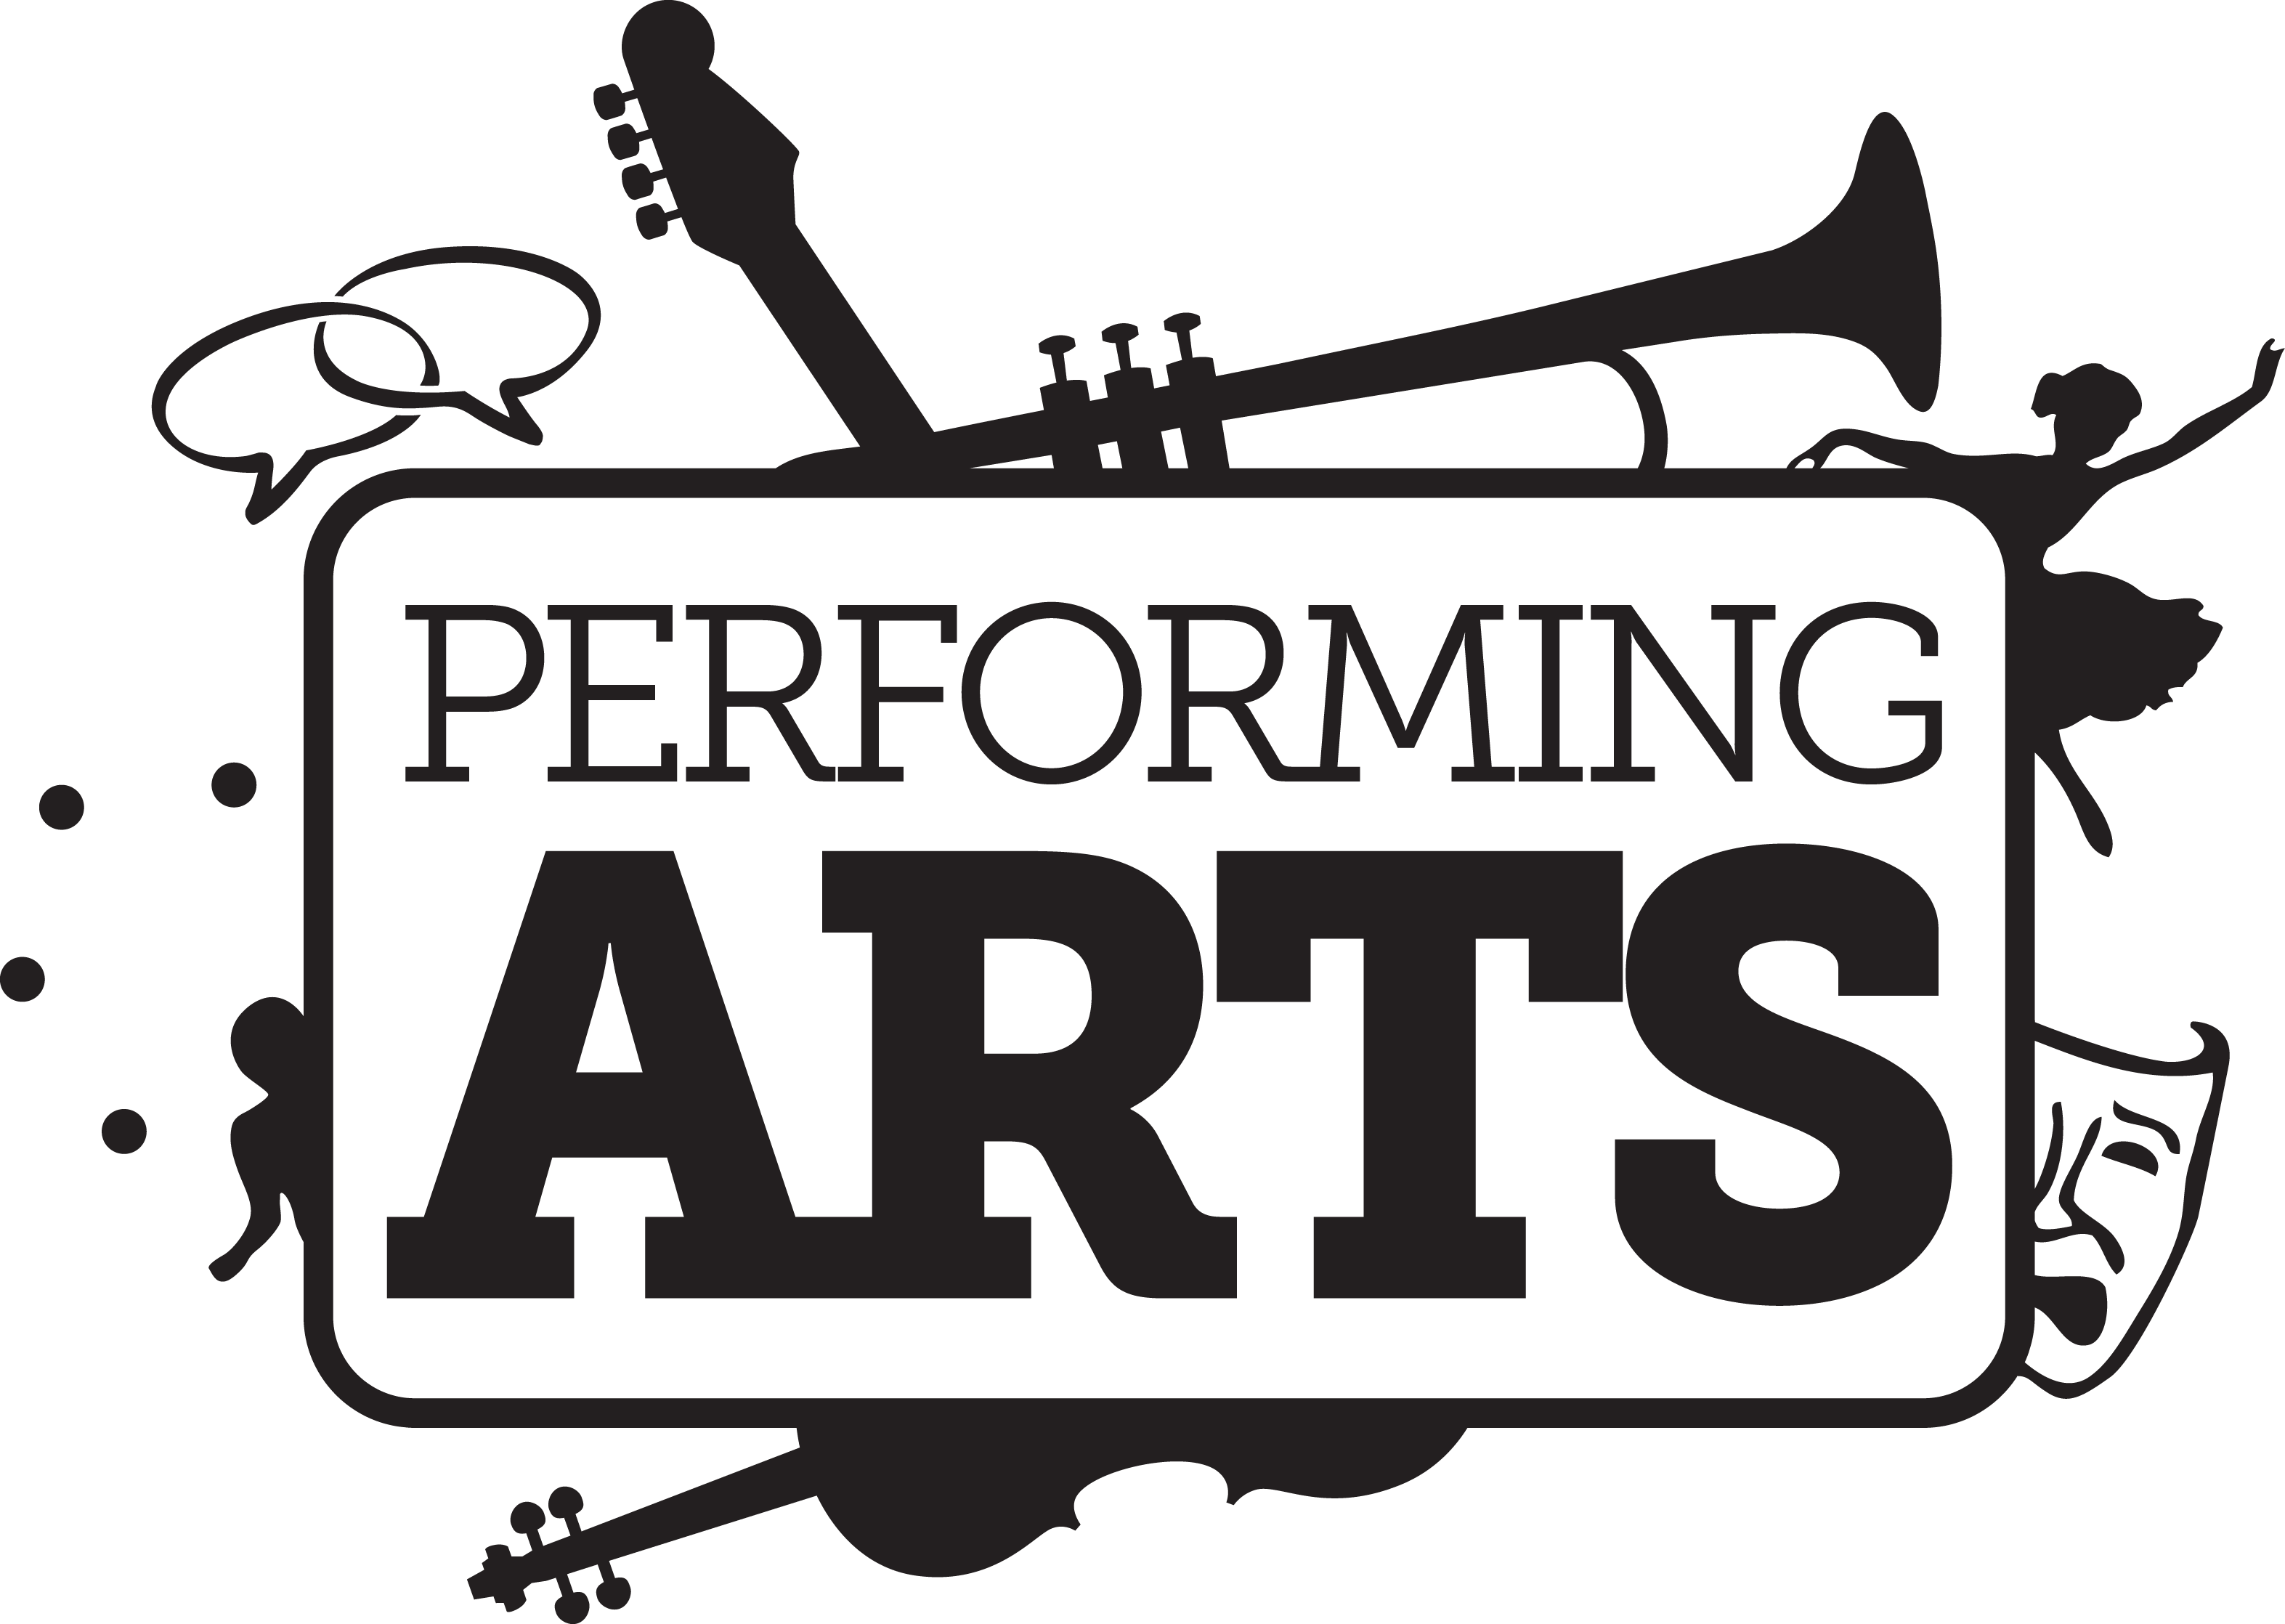 music-clipart-performing-art-7.png (3146×2236